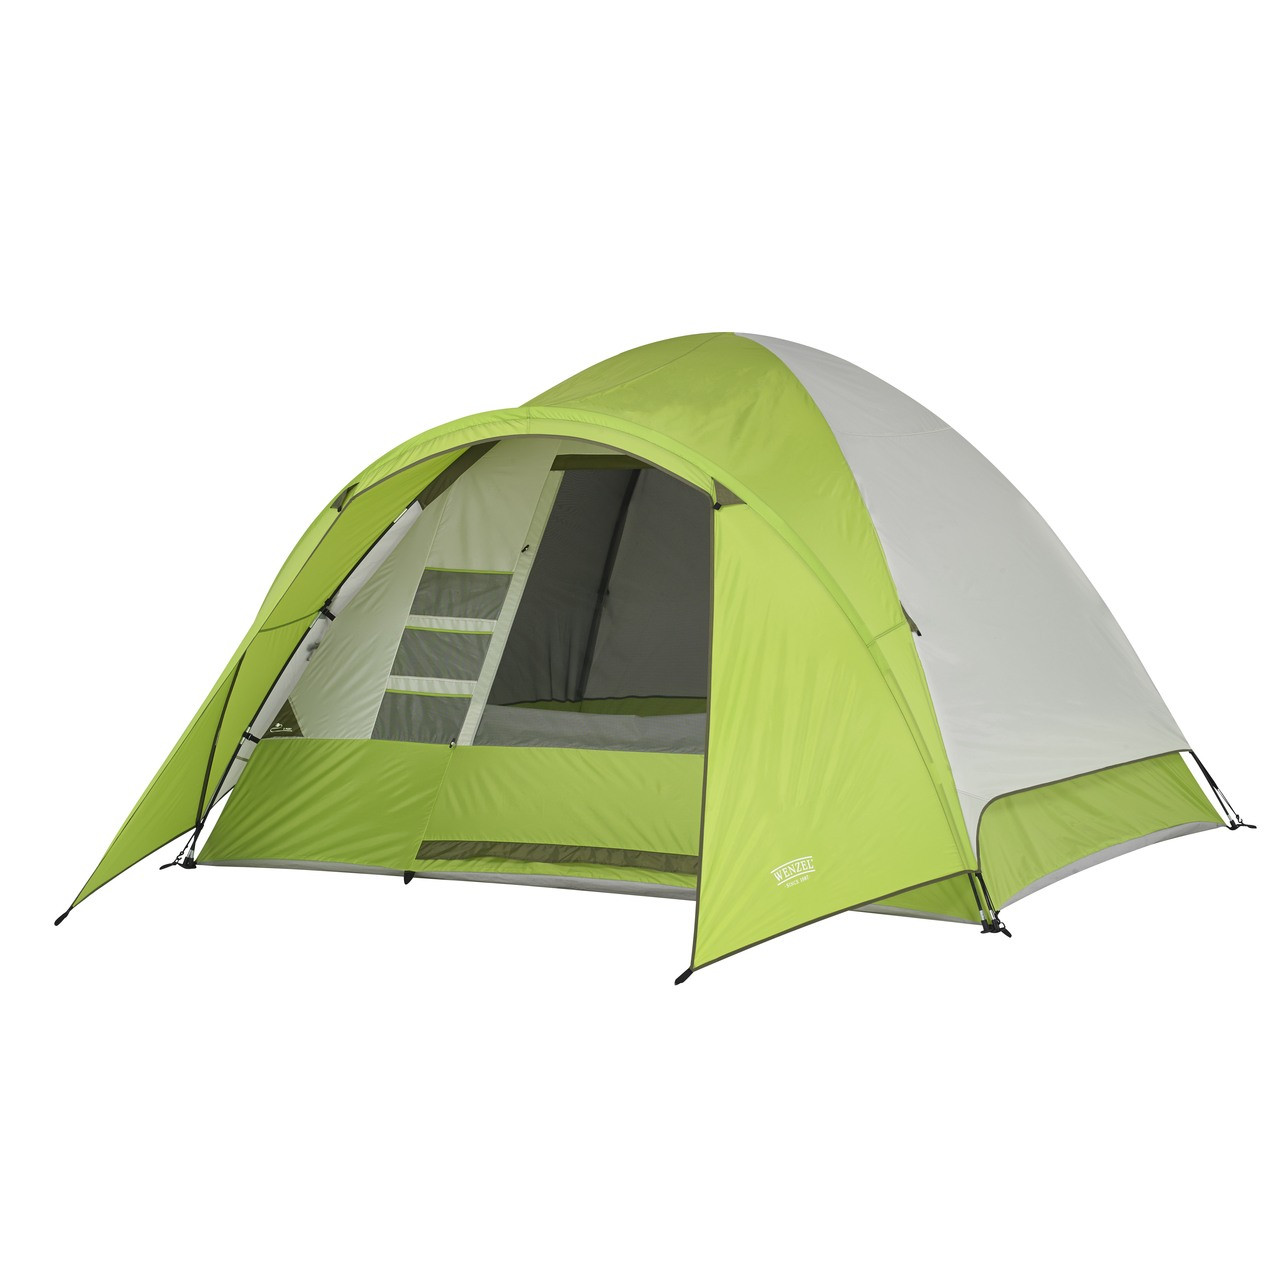 Wenzel Portico 6 tent, light green and tan, completely setup with the rain fly on and the vestibule extended with the main screen window rolled open